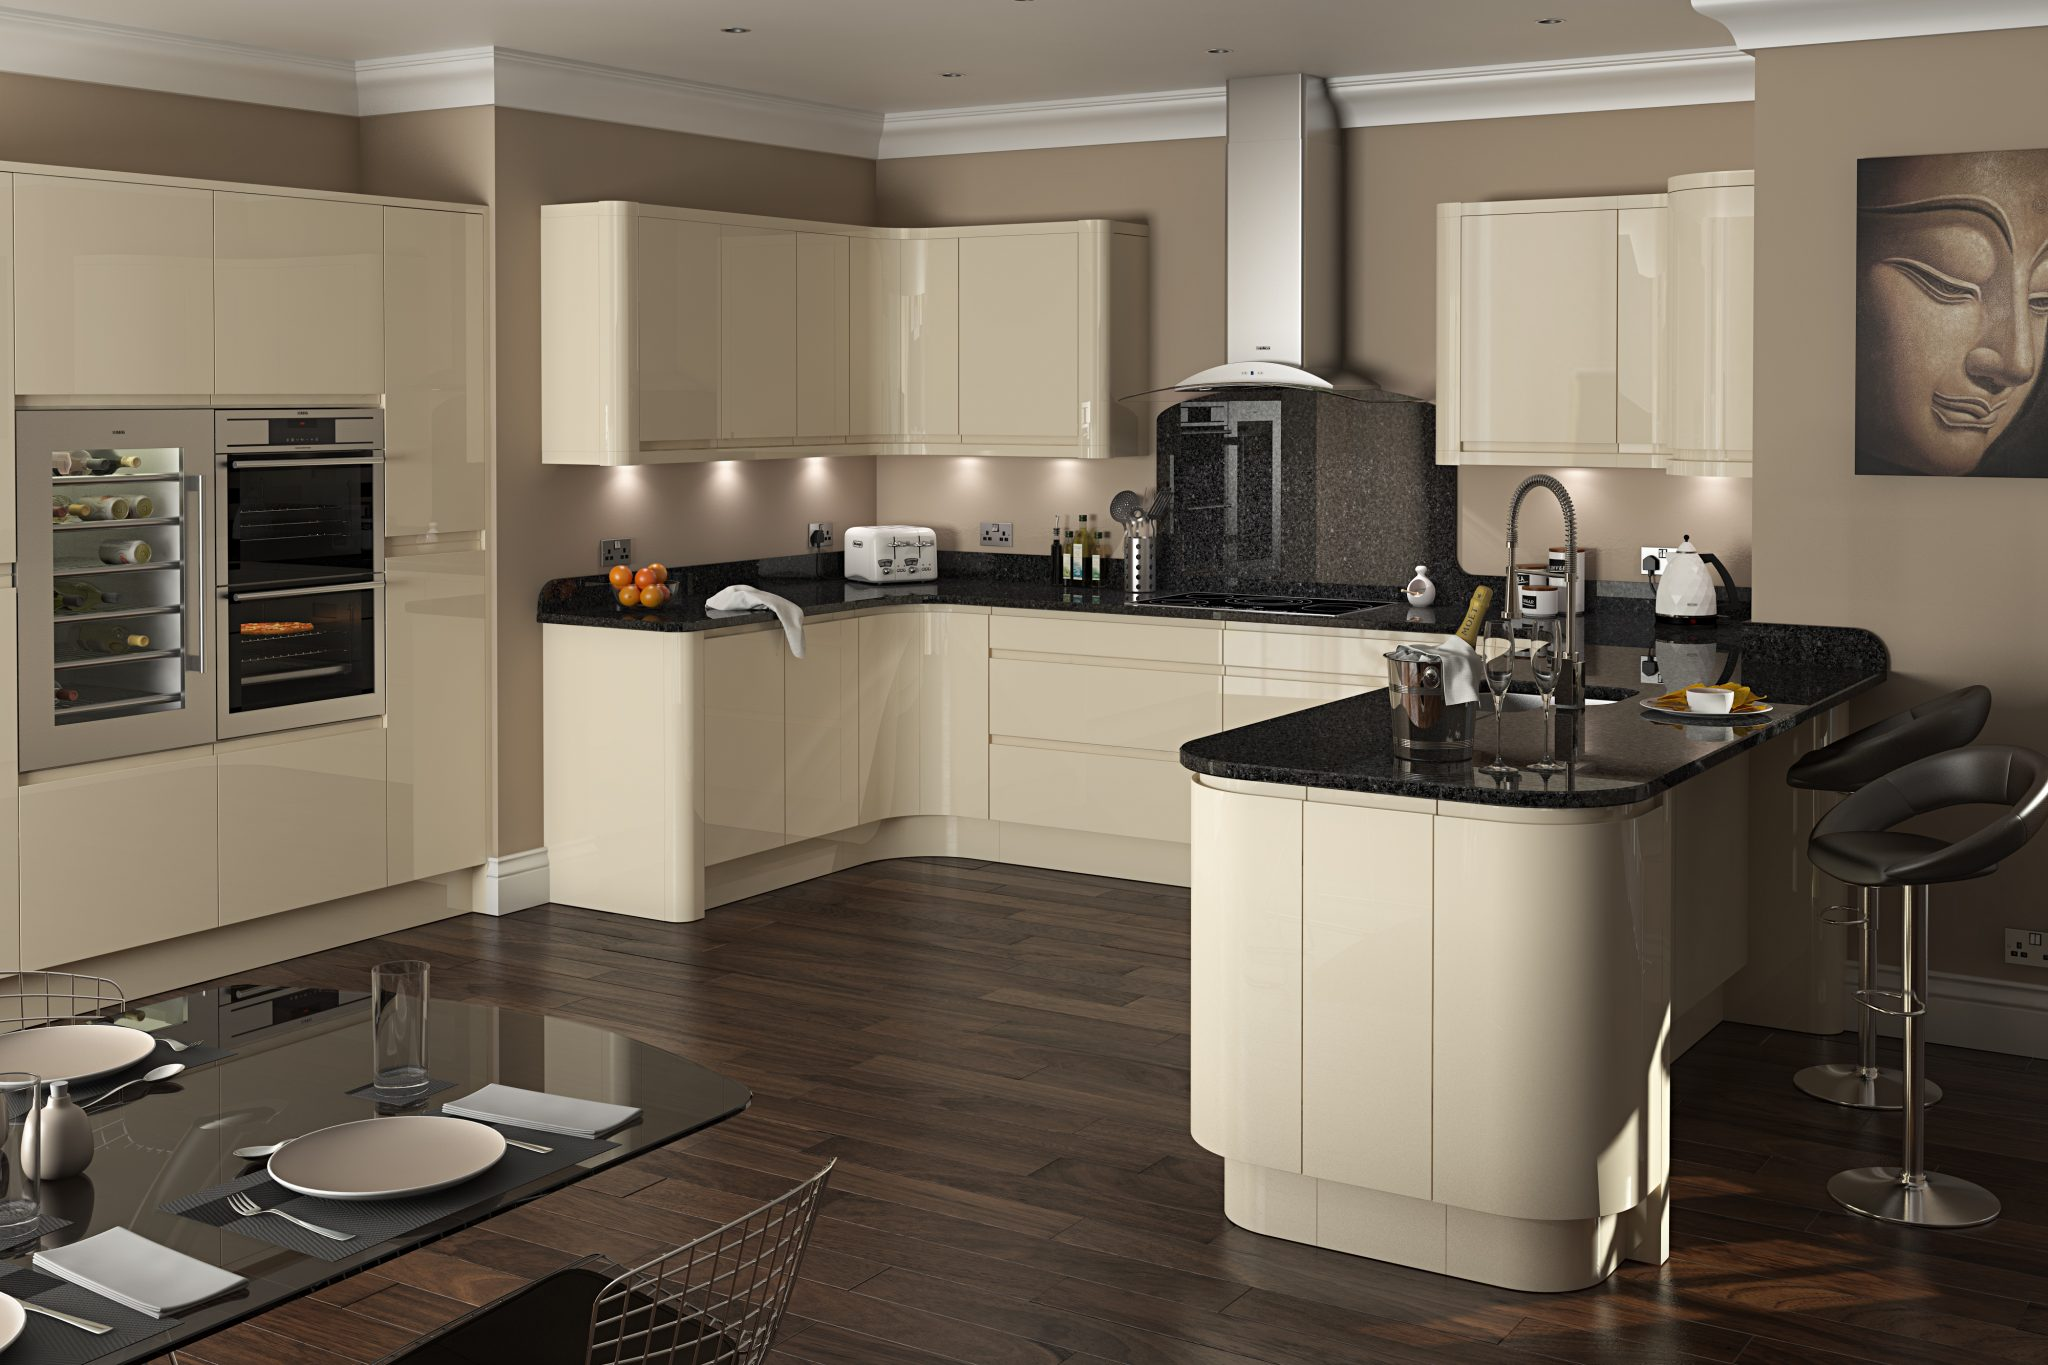 Kitchen design kitchens wirral bespoke luxury designs for How to create a kitchen